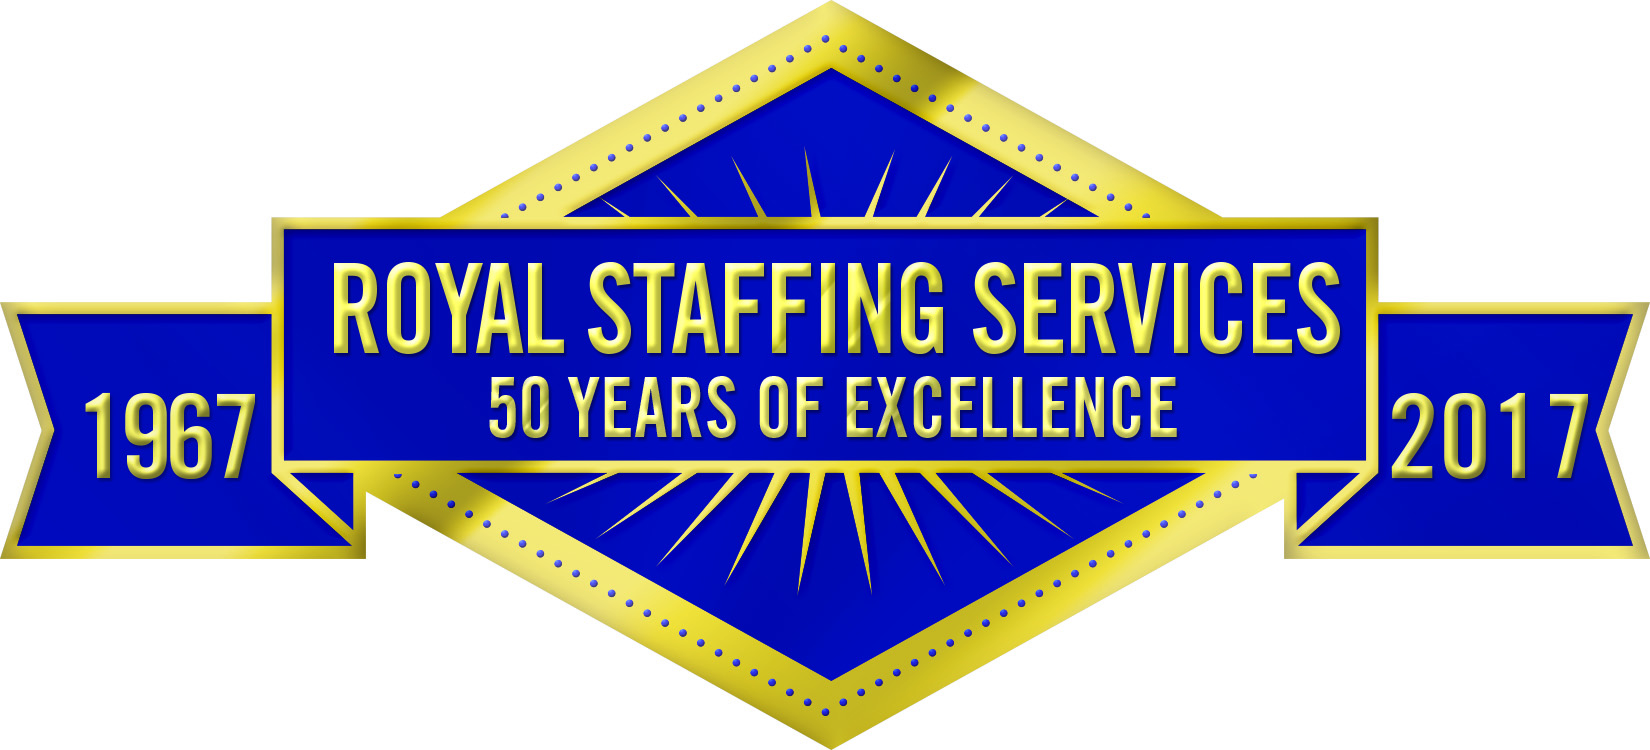 Royal Staffing